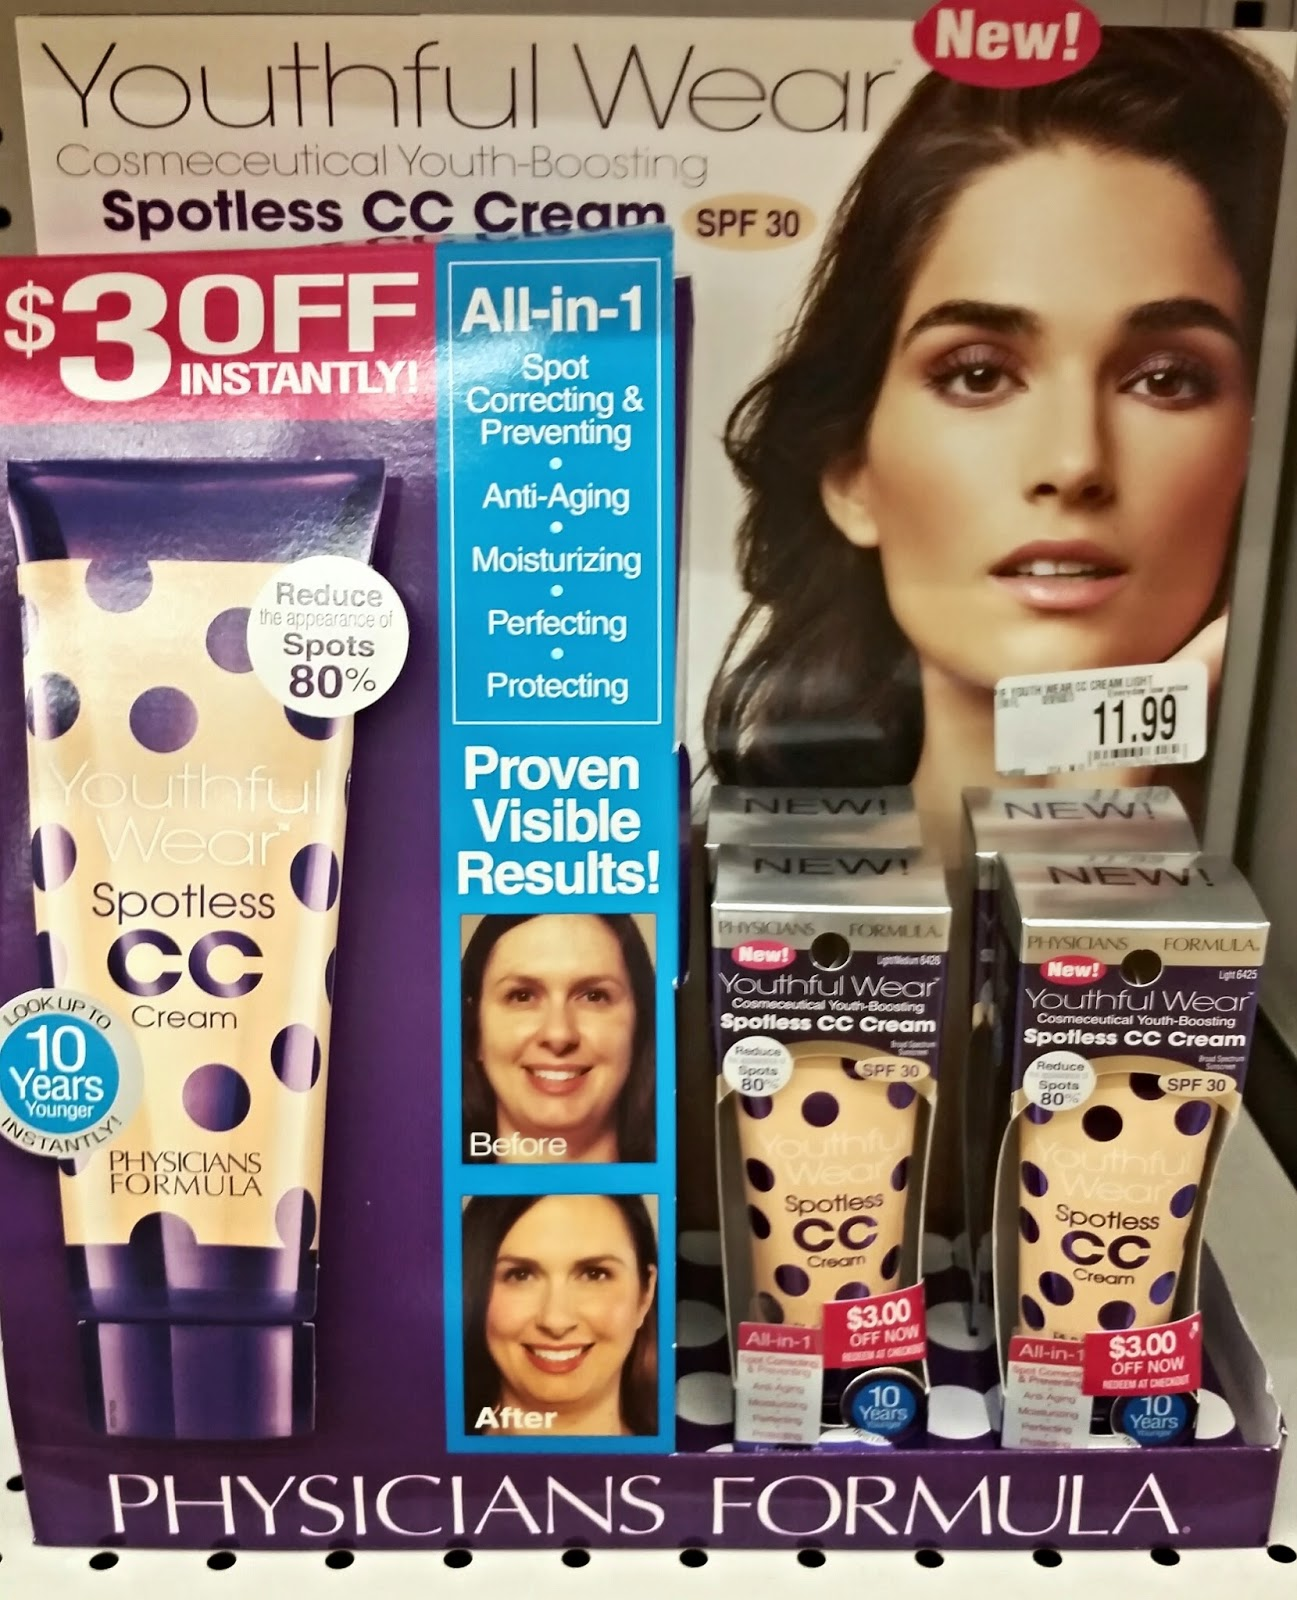 Physicians Formula Spotless CC Cream Spotted at Bed, Bath & Beyond ...